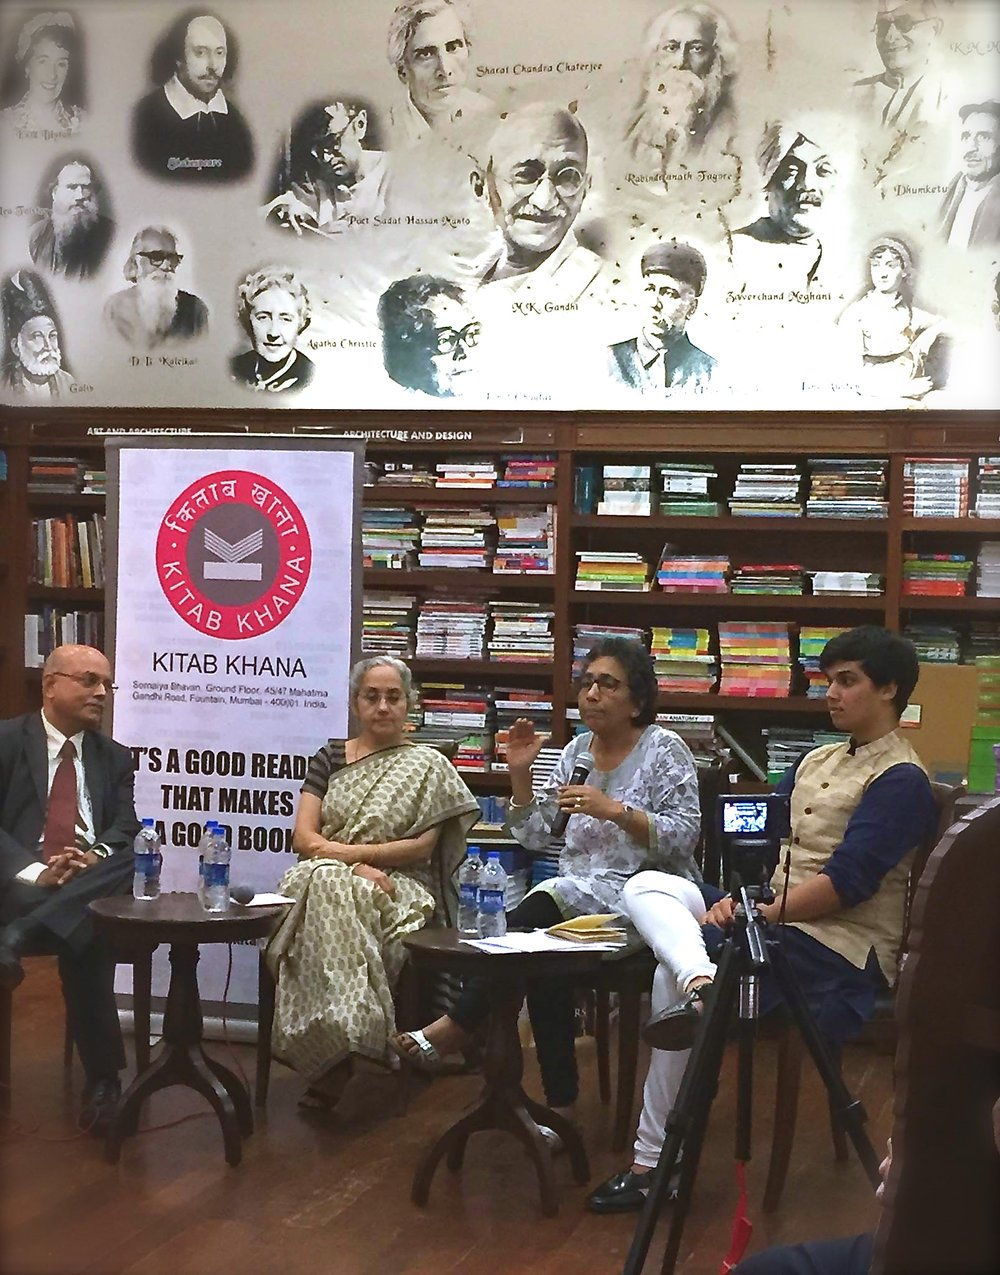 Panel Discussion at Kitab Khana, a bookstore, on The Indian Emergency, October 2015 with Kalpana Sharma, a veteran journalist, Rajni Bakshi, a writer, and Shailesh Haribhakti, a businessman.